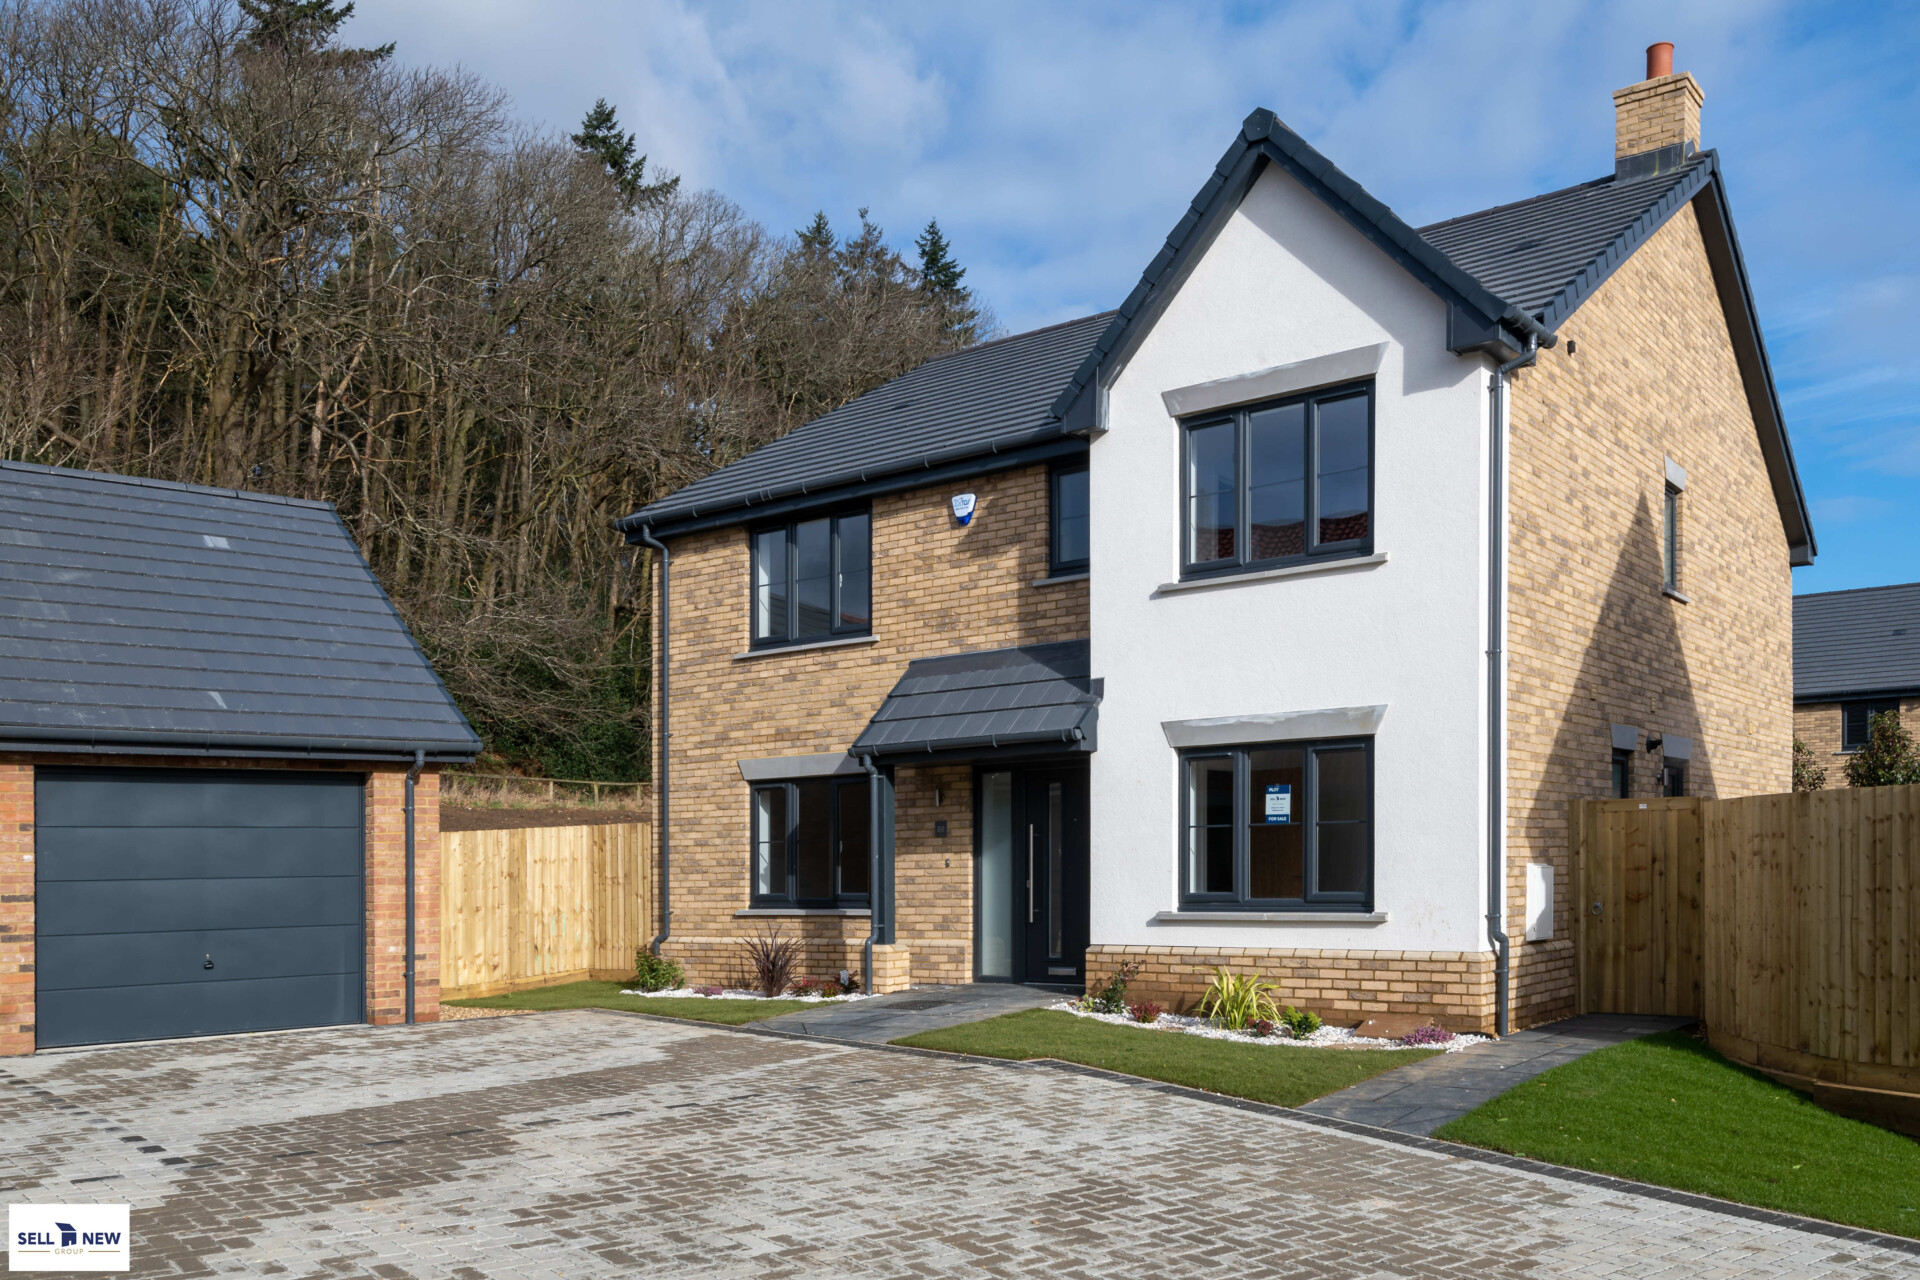 Plot 11 Woodland Gardens Maulden – Stunning plot with countryside and woodland views